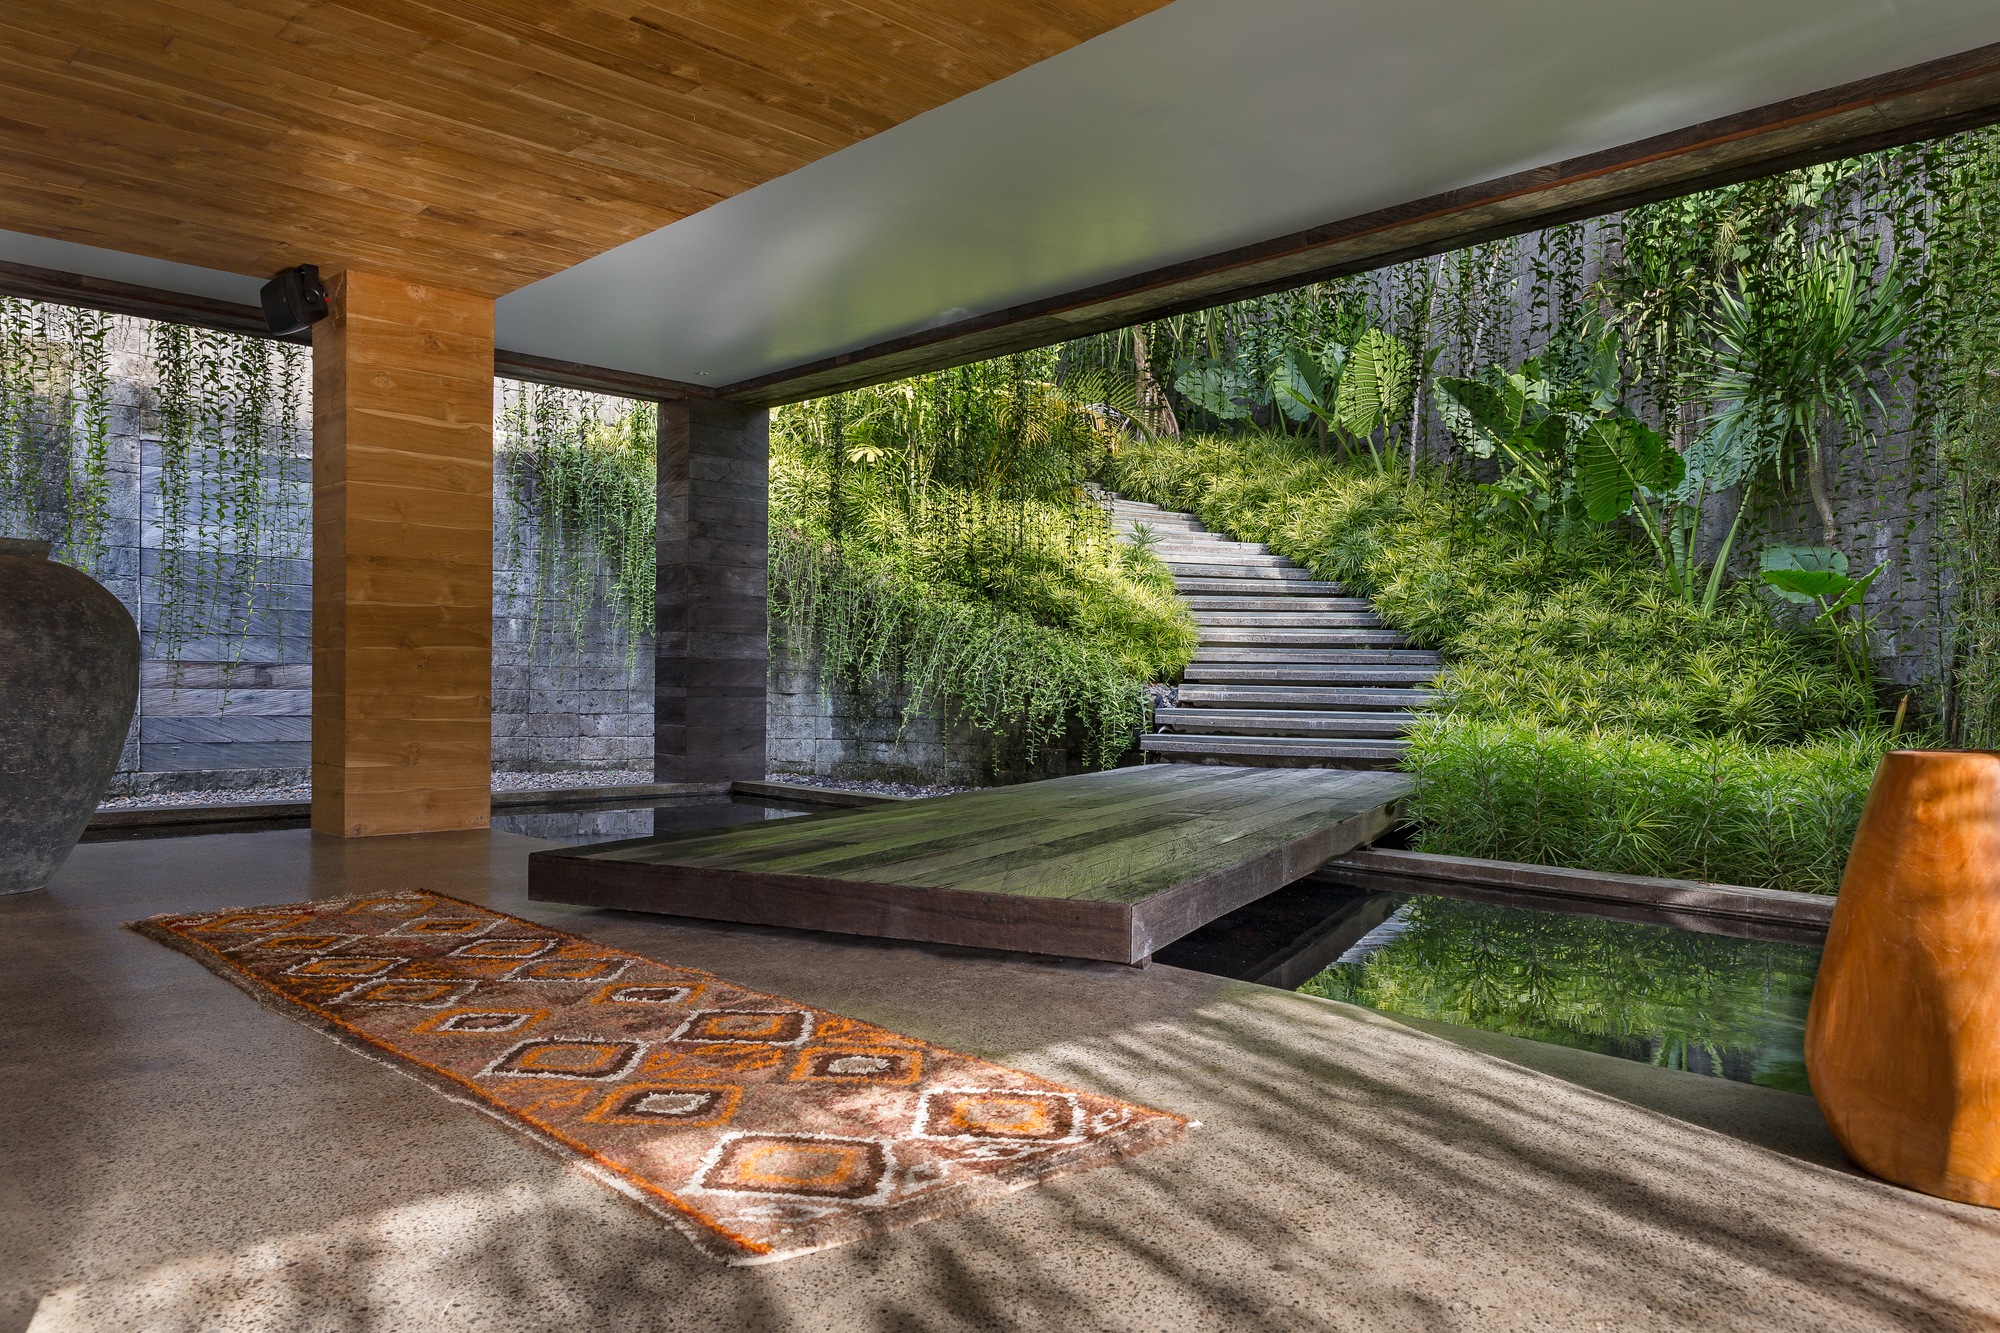 Chameleon Villa / Word of Mouth Architecture